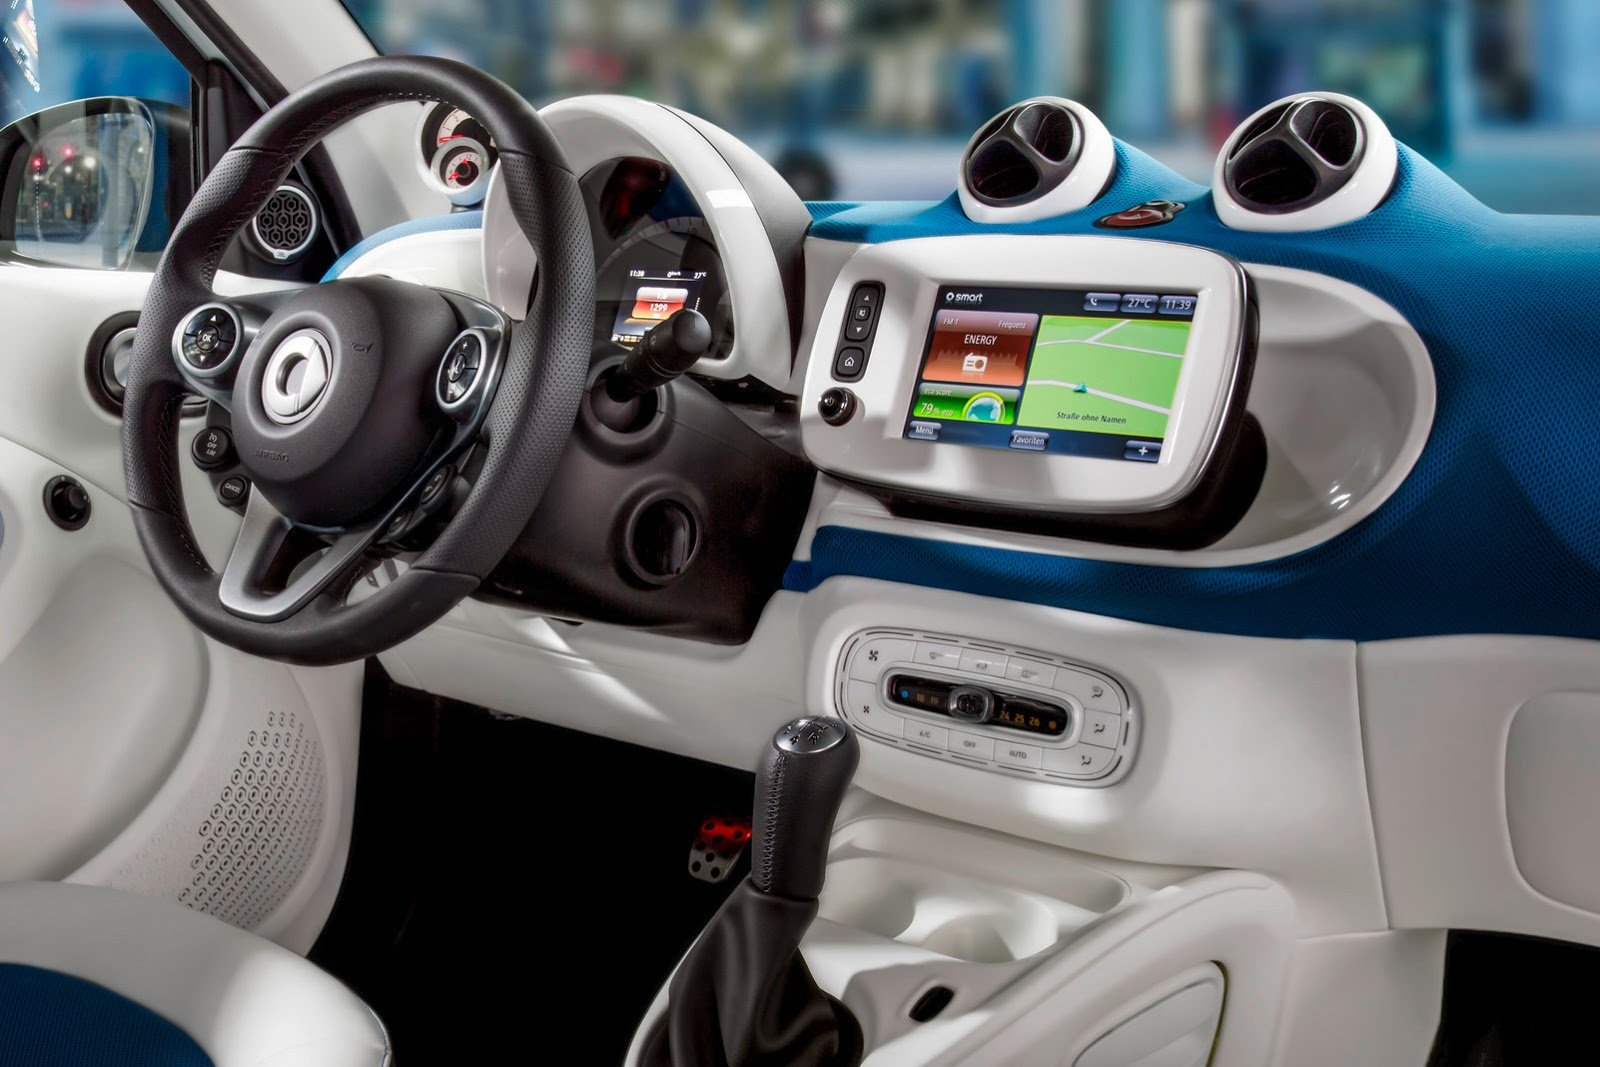 2014 smart fortwo forfour interior wallpaper car wallpaper ...